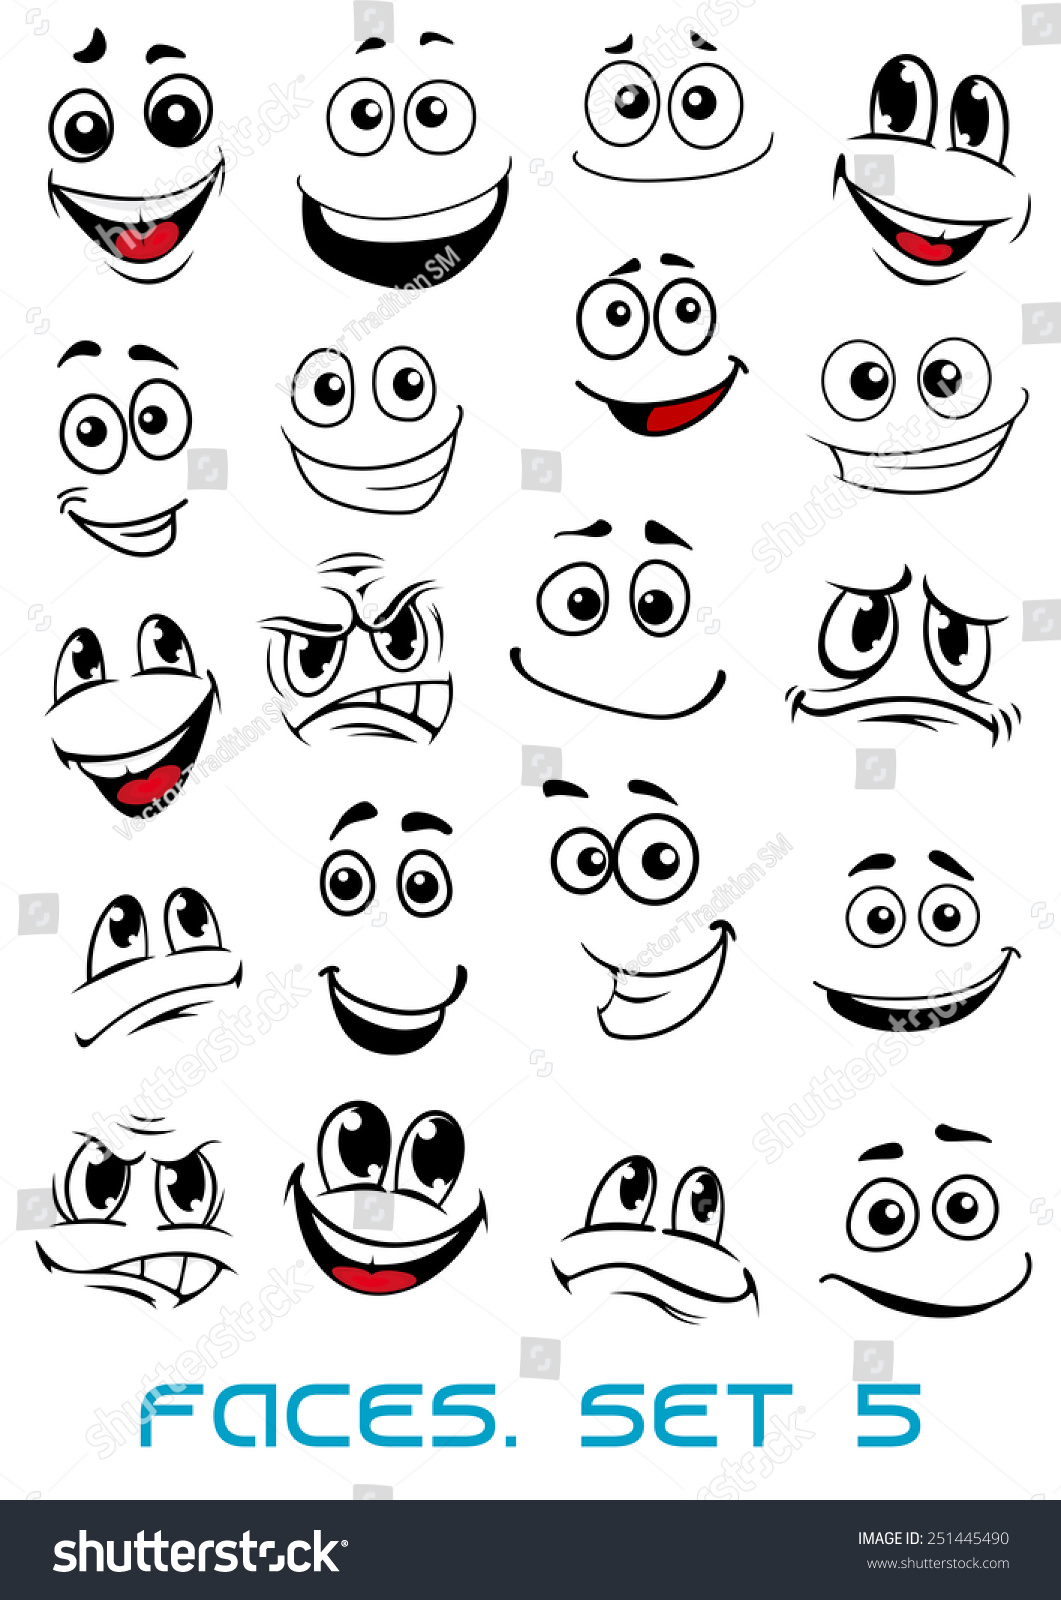 Cartoon faces with different expressions, mostly happy and smiling, featuring the eyes and mouth, design elements on white #251445490